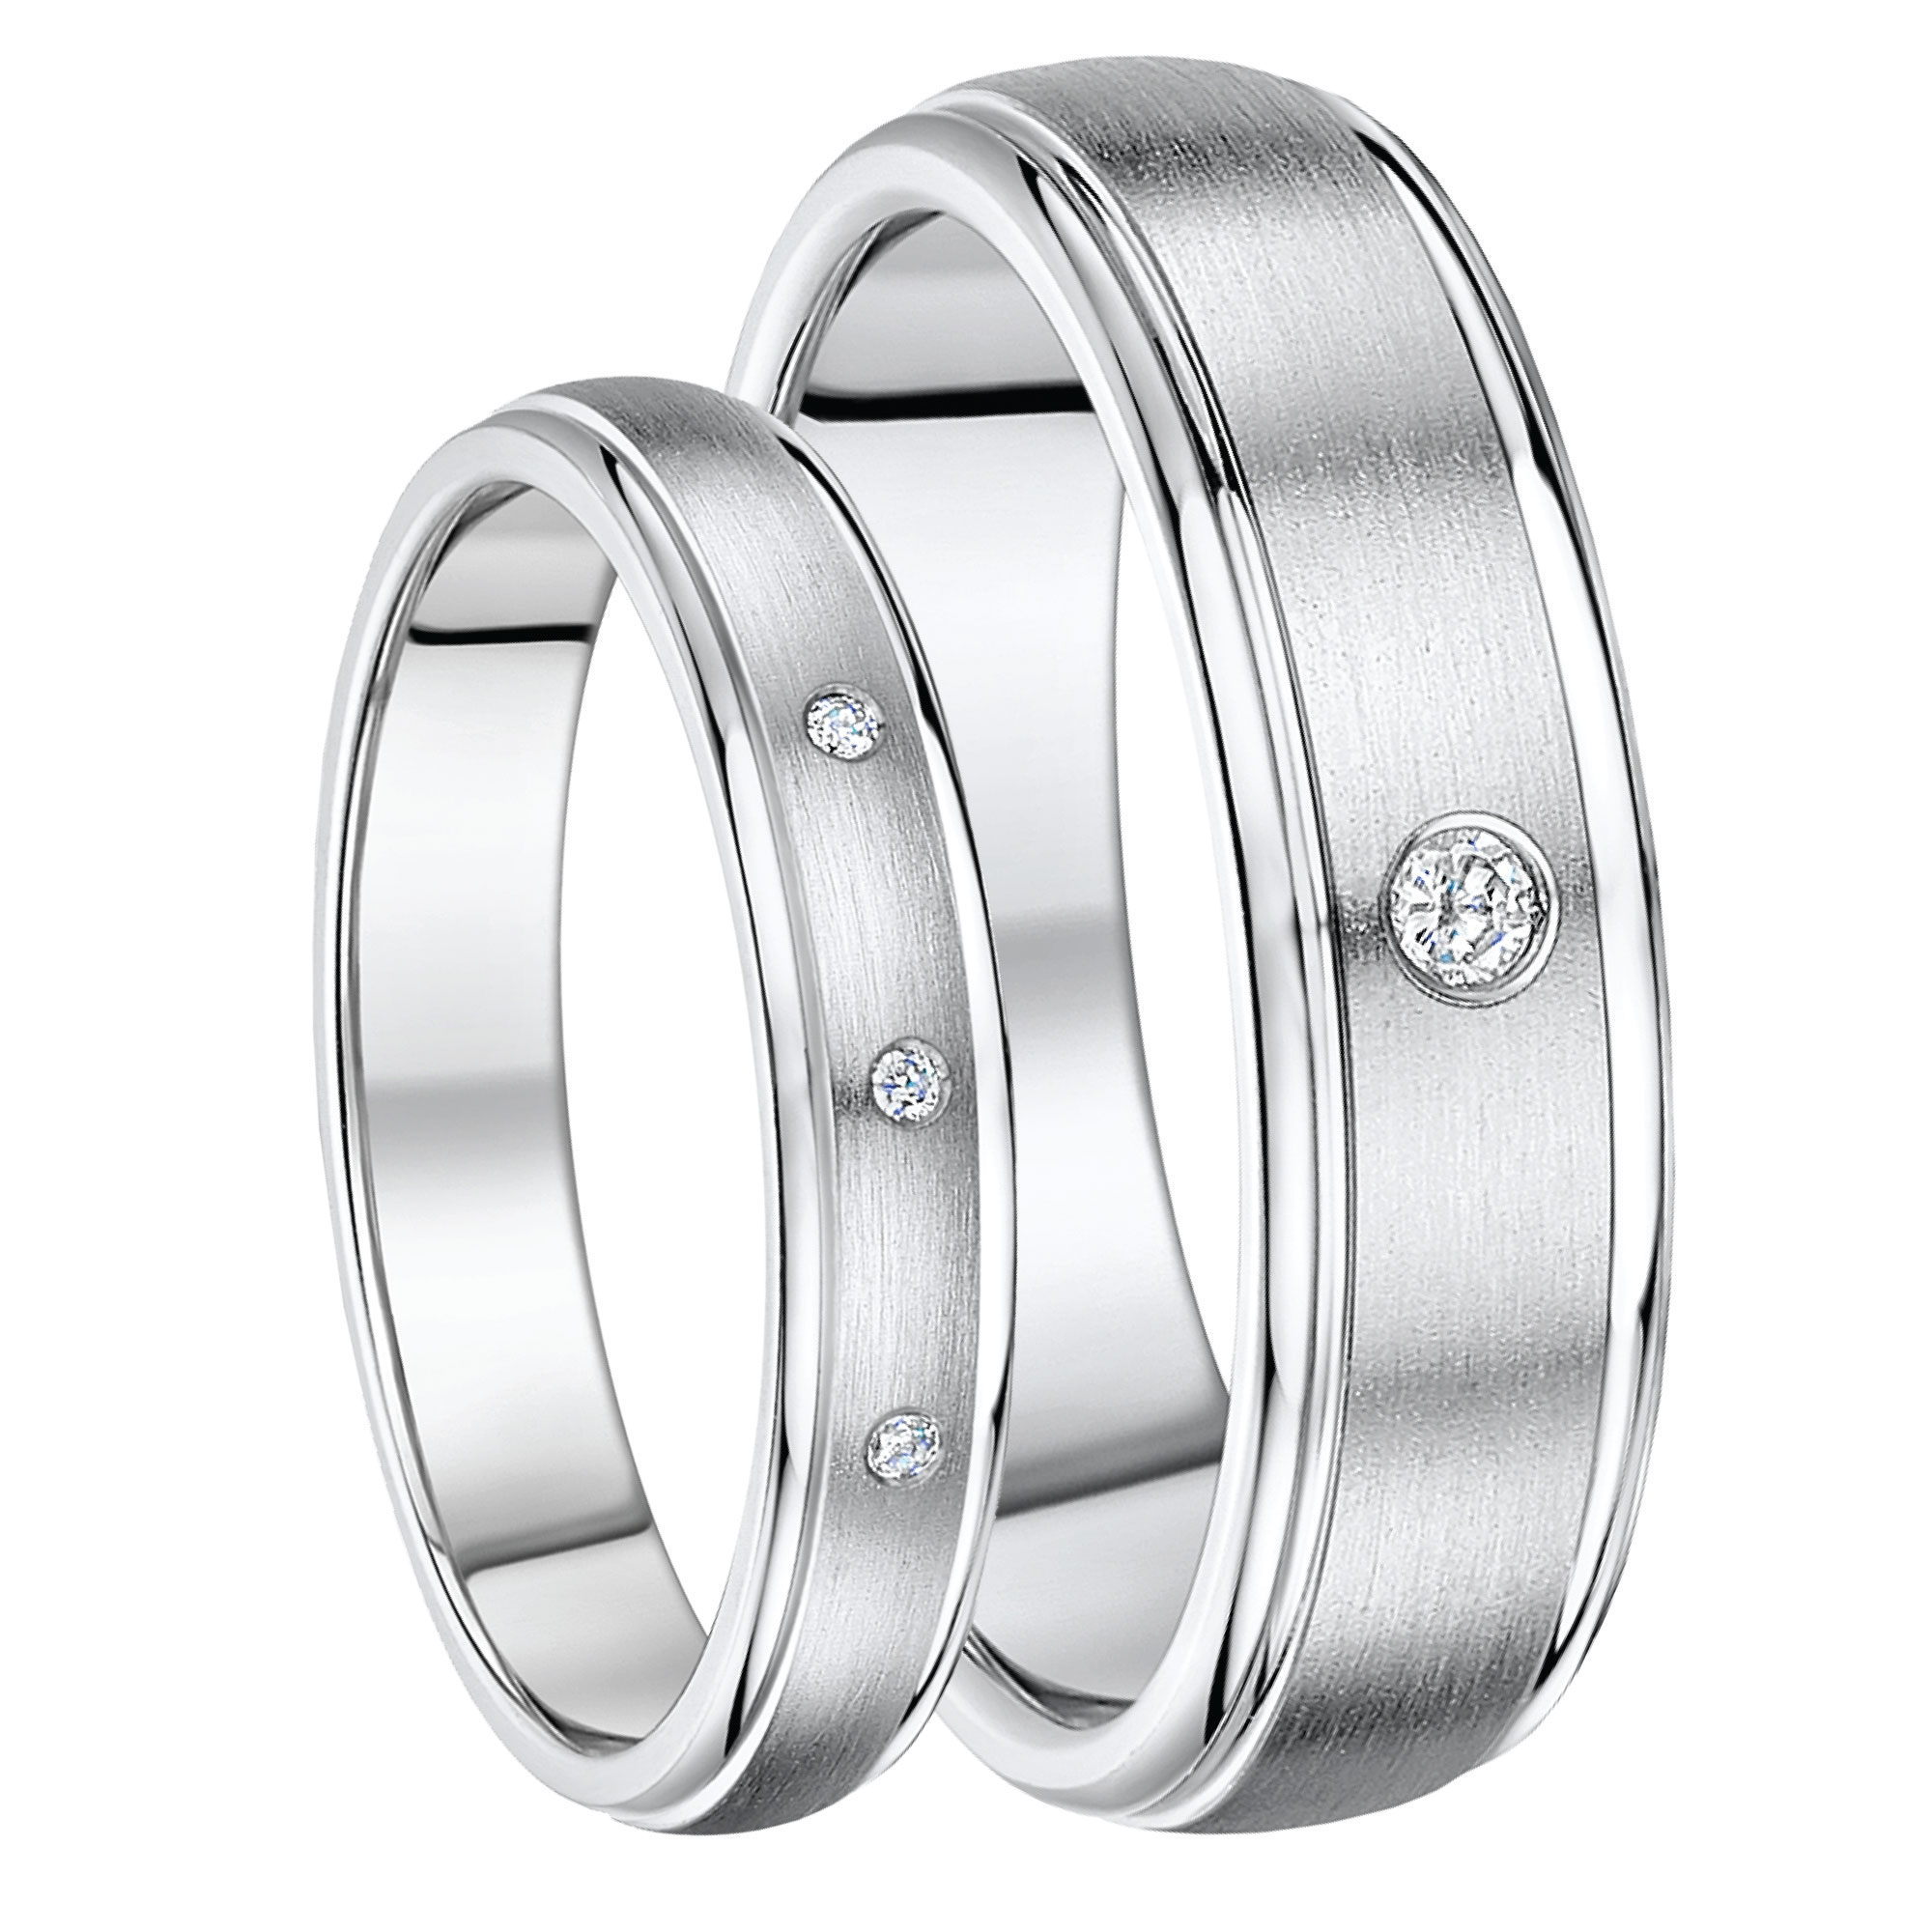 Titanium Diamond Wedding Rings 4&6mm His & Hers Rings